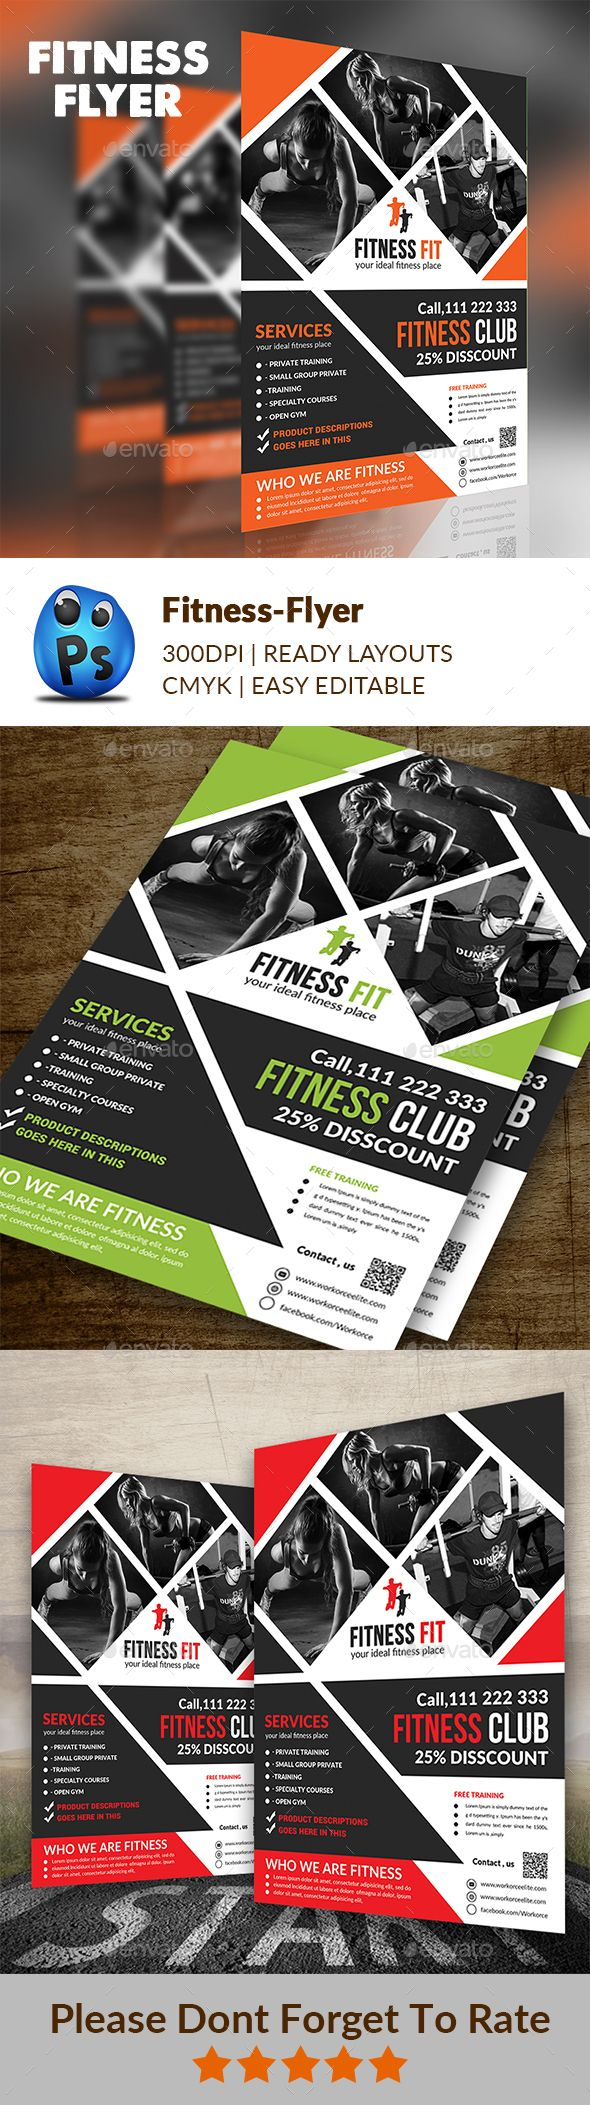 Fitness Flyer Design - Corporate Flyer Template PSD. Download here: graphicriver...